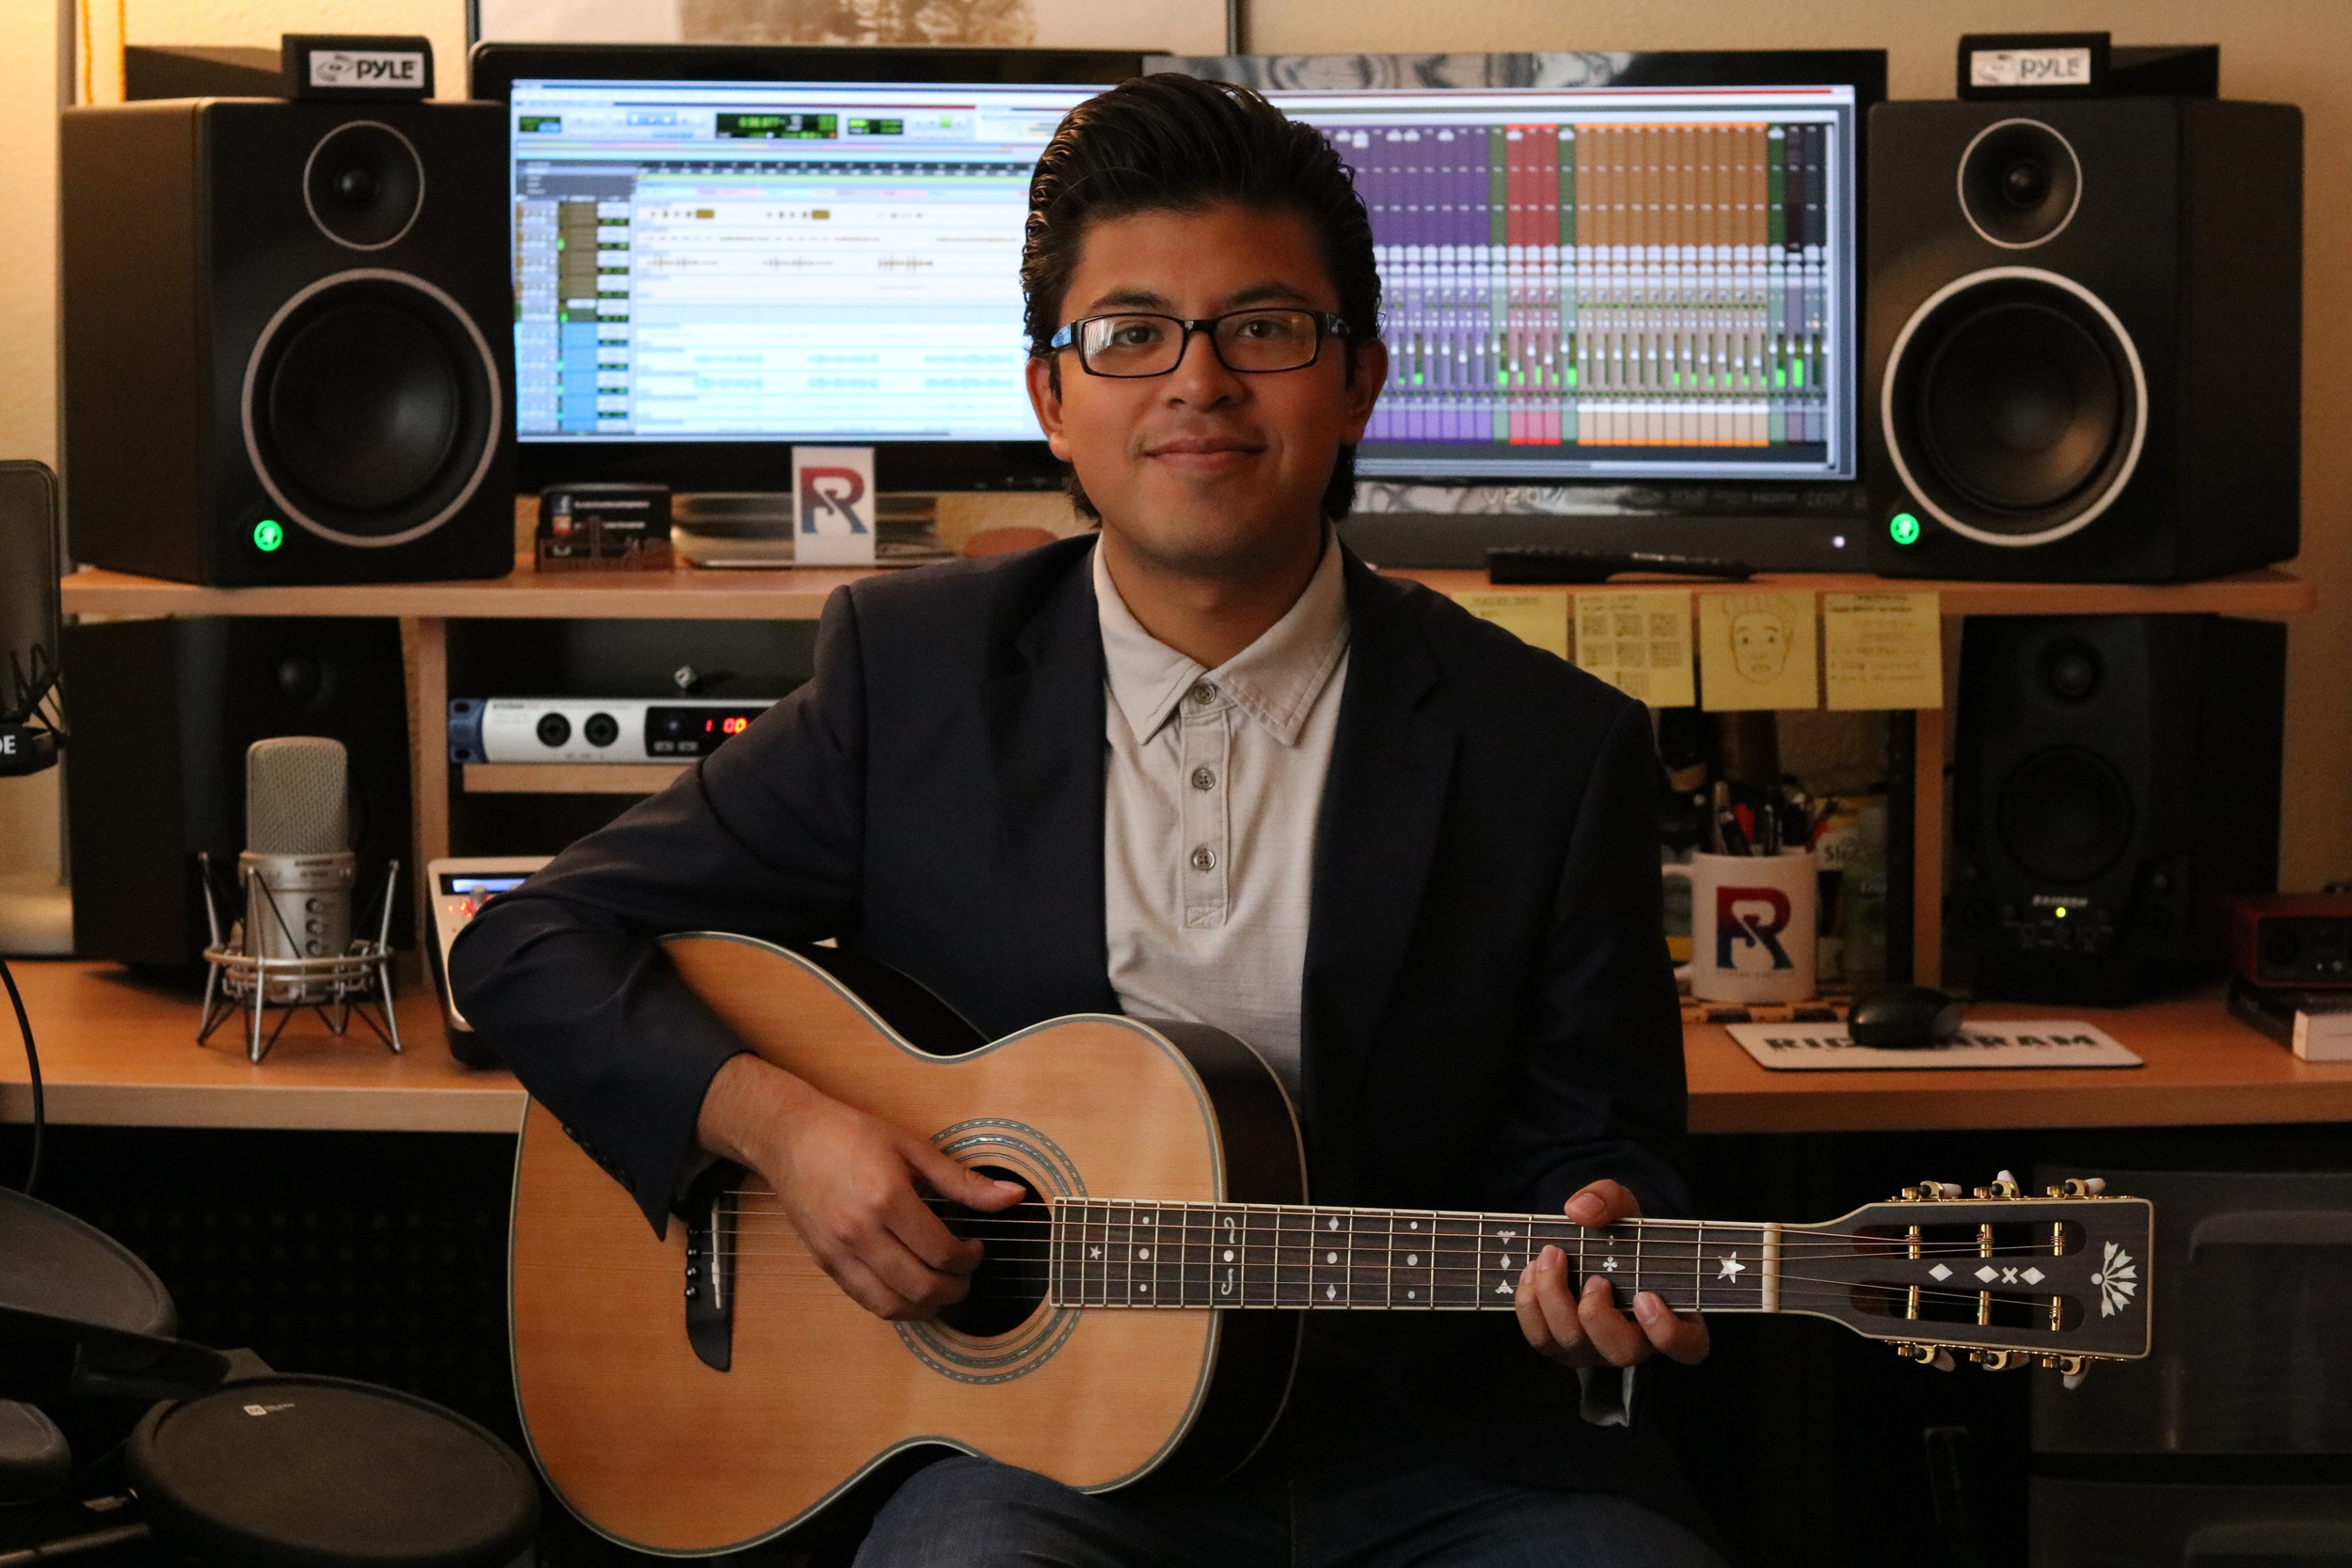 Ricardo Santiago is a musician, songwriter, producer, and audio engineer from Southern California. Ricardo is credited as a composer and performer on multiple professional released albums. In 2015, RICSANRAM records was founded by Ricardo. Ever since, RICSANRAM records has been working with artists and directors in both music and film. Currently, Ricardo and RICSANRAM records are working on a new original album composed by Ricardo, and on a themed original album by one of his side projects, Summer Days.